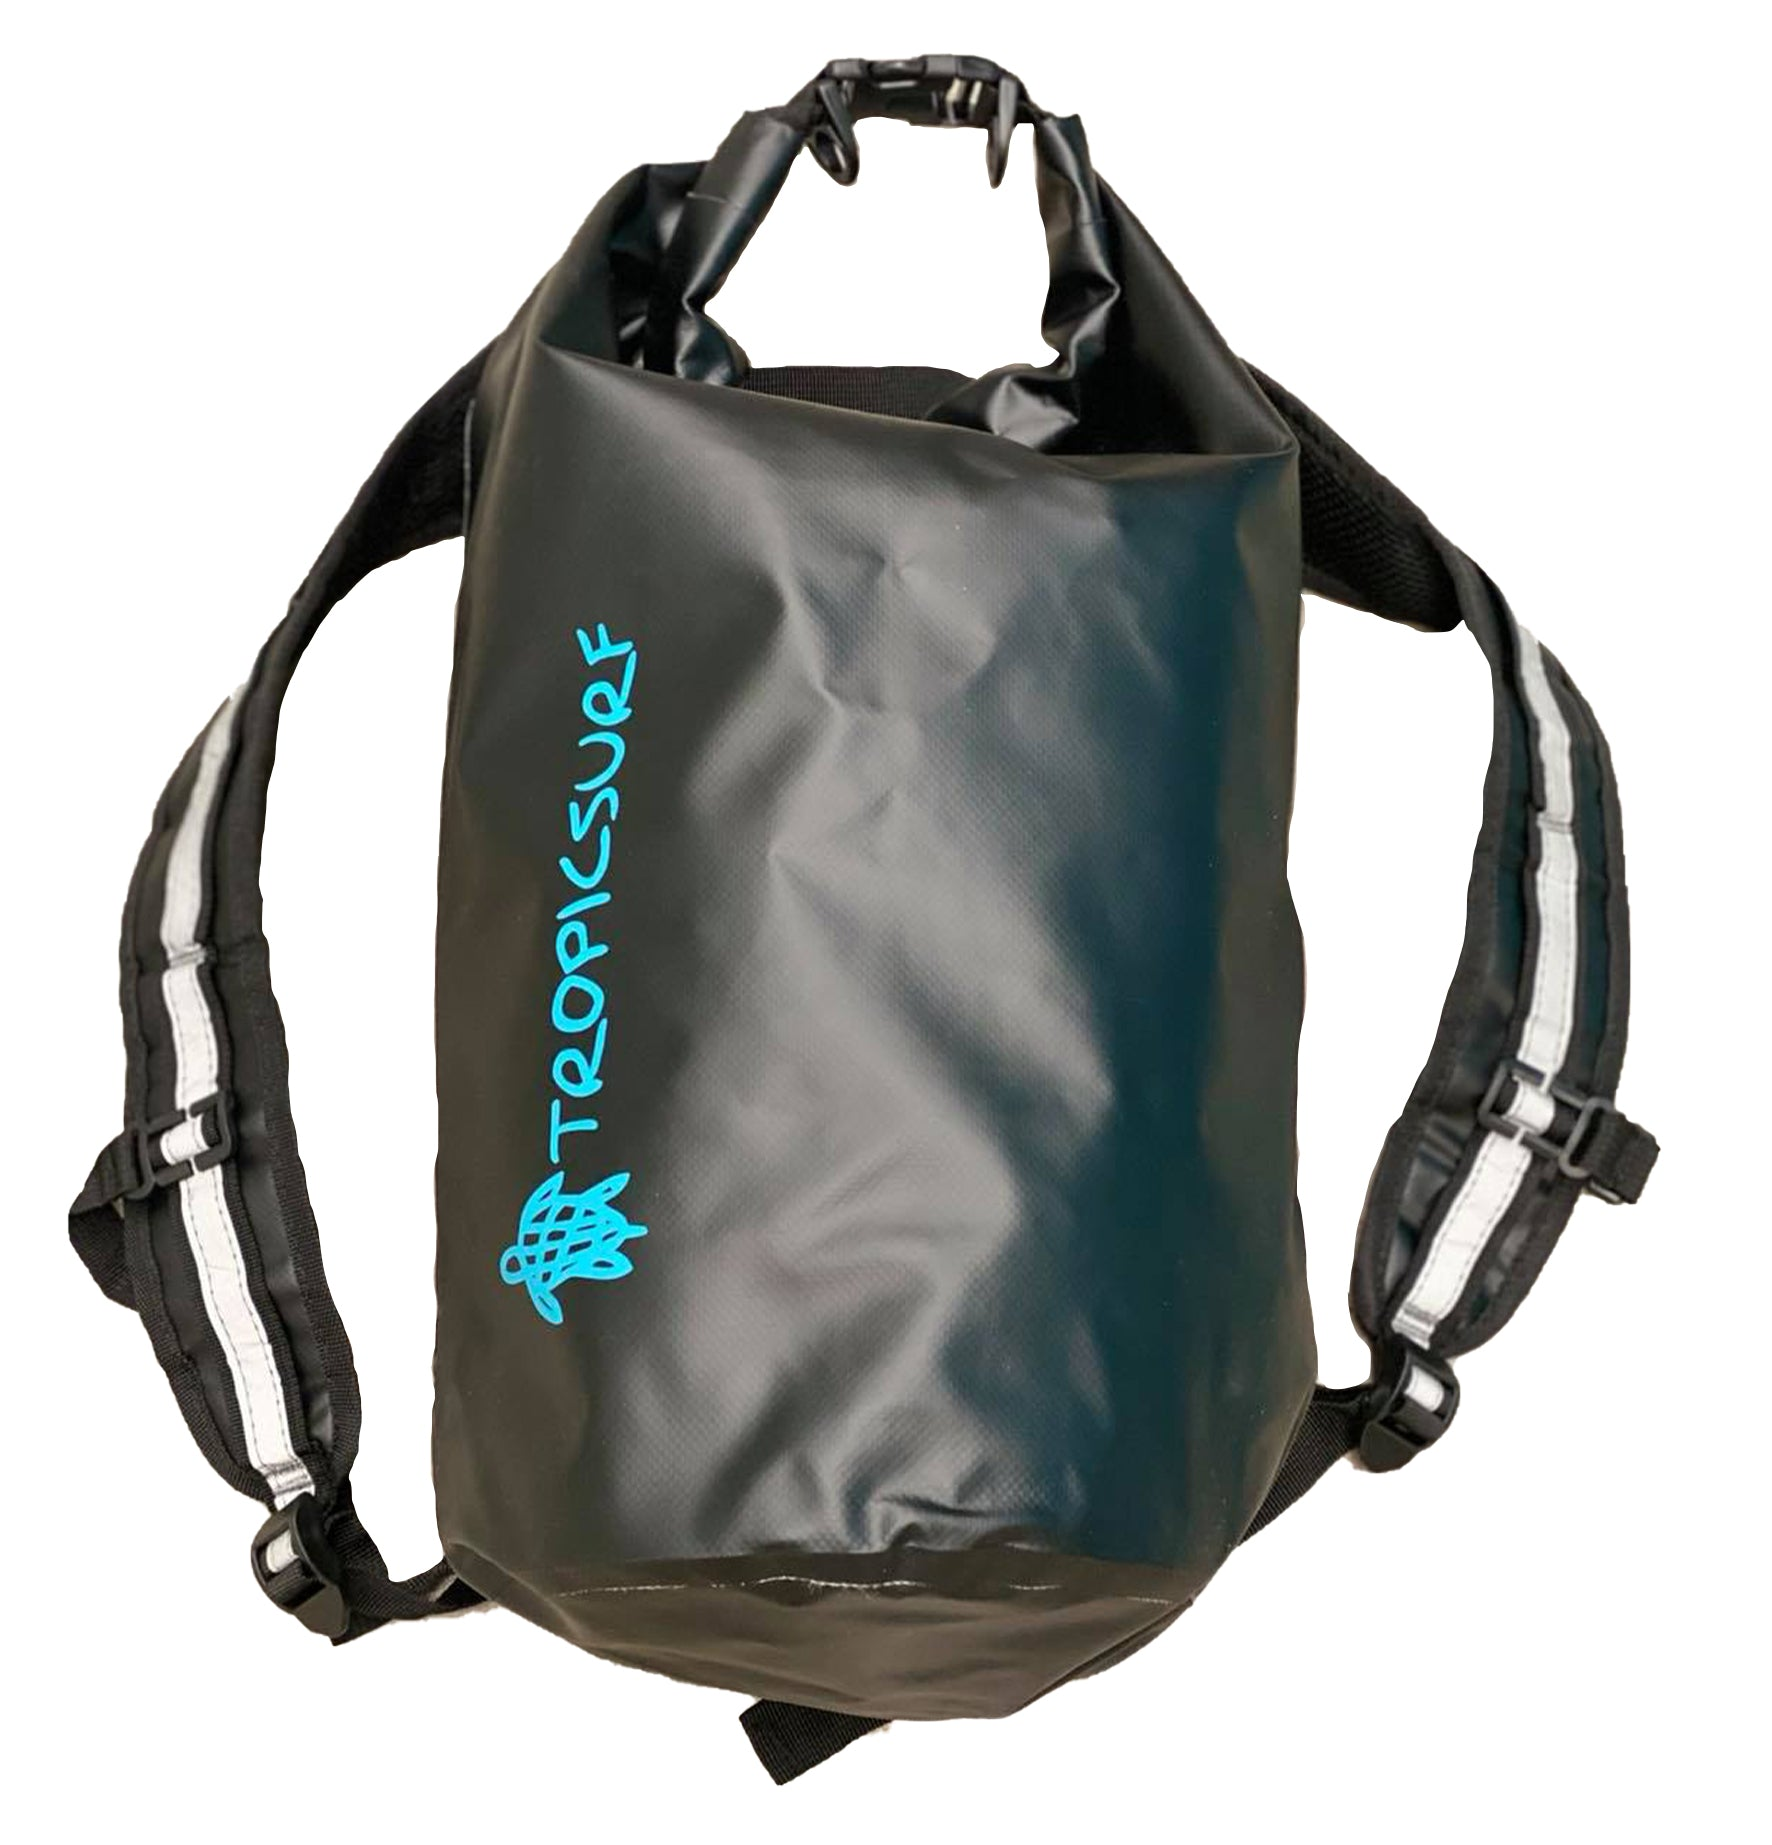 Tropicsurf Waterproof Backpack (15L)